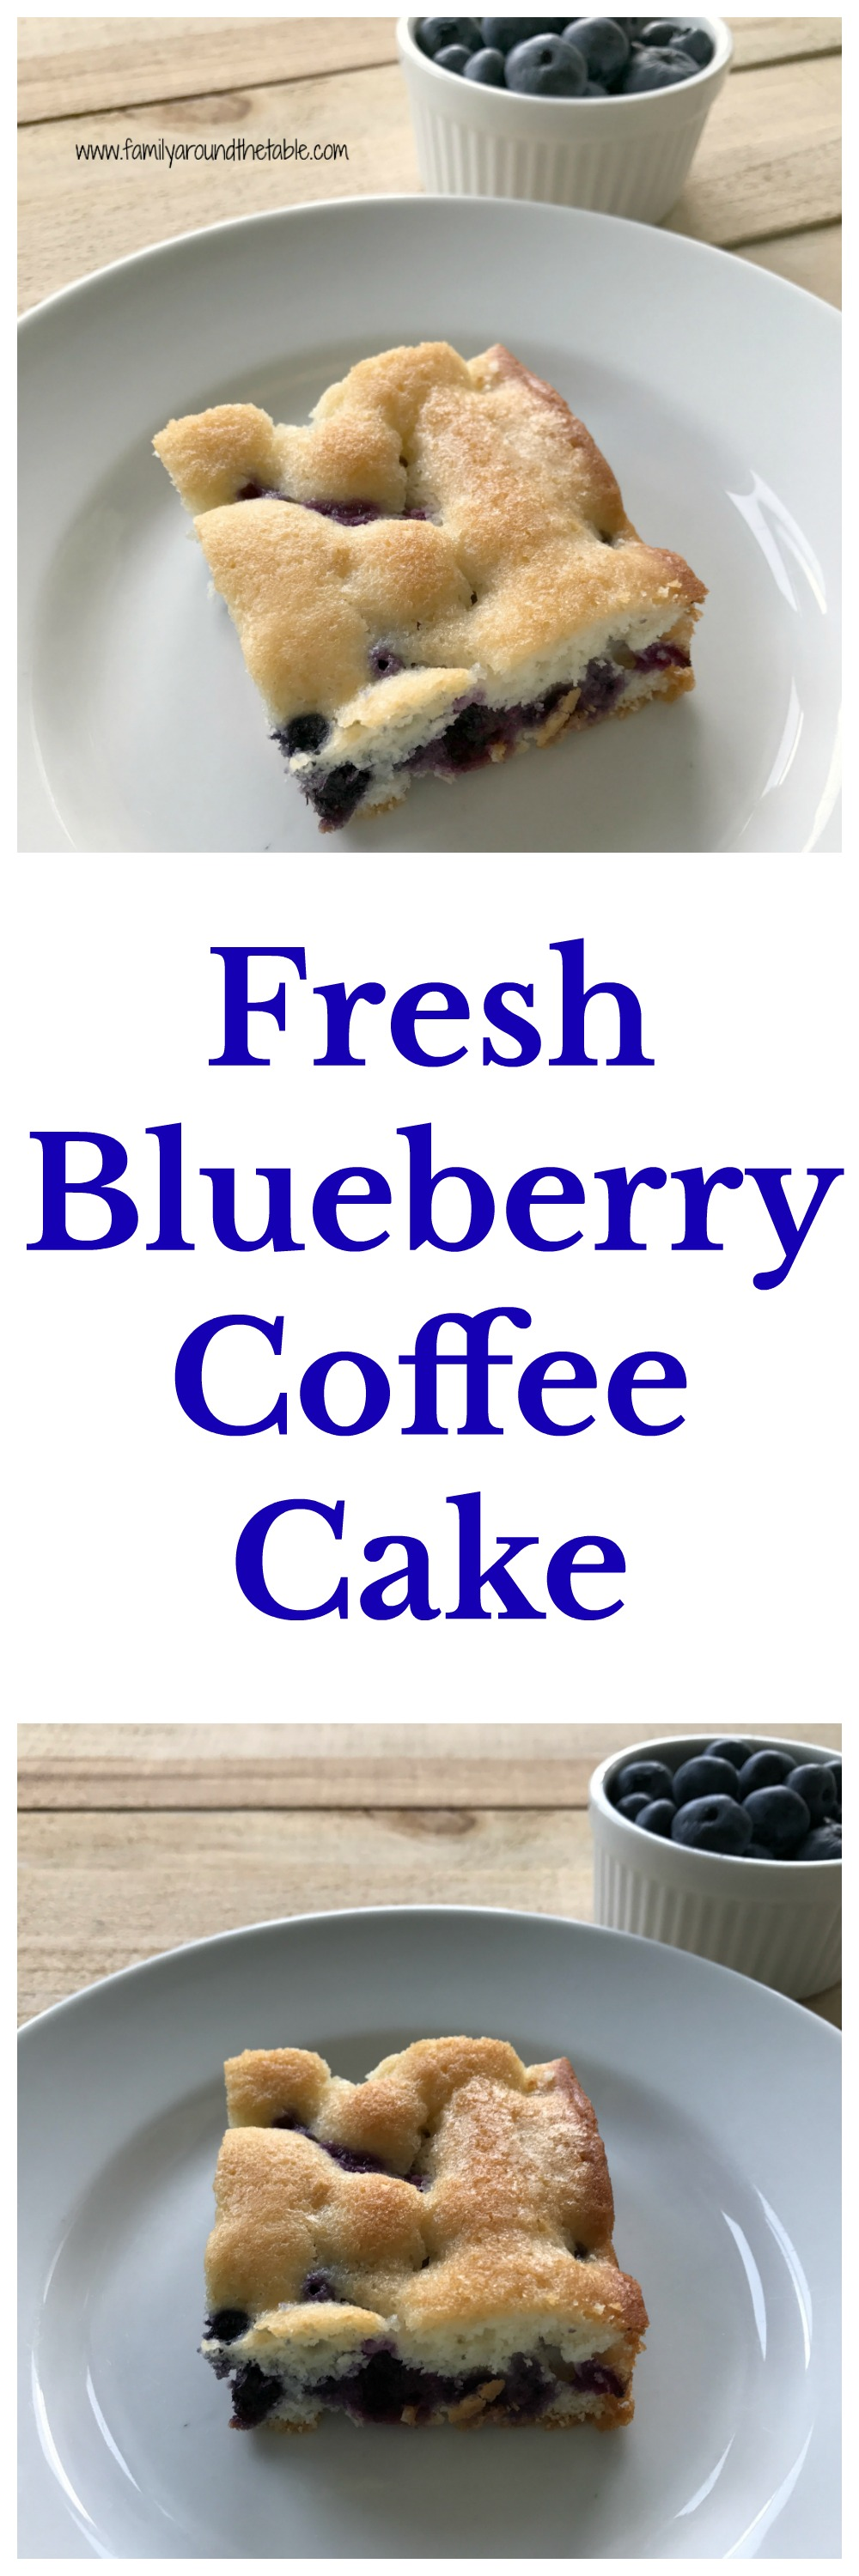 Start the day with a slice of fresh blueberry coffee cake. Perfect with your coffee or tea.